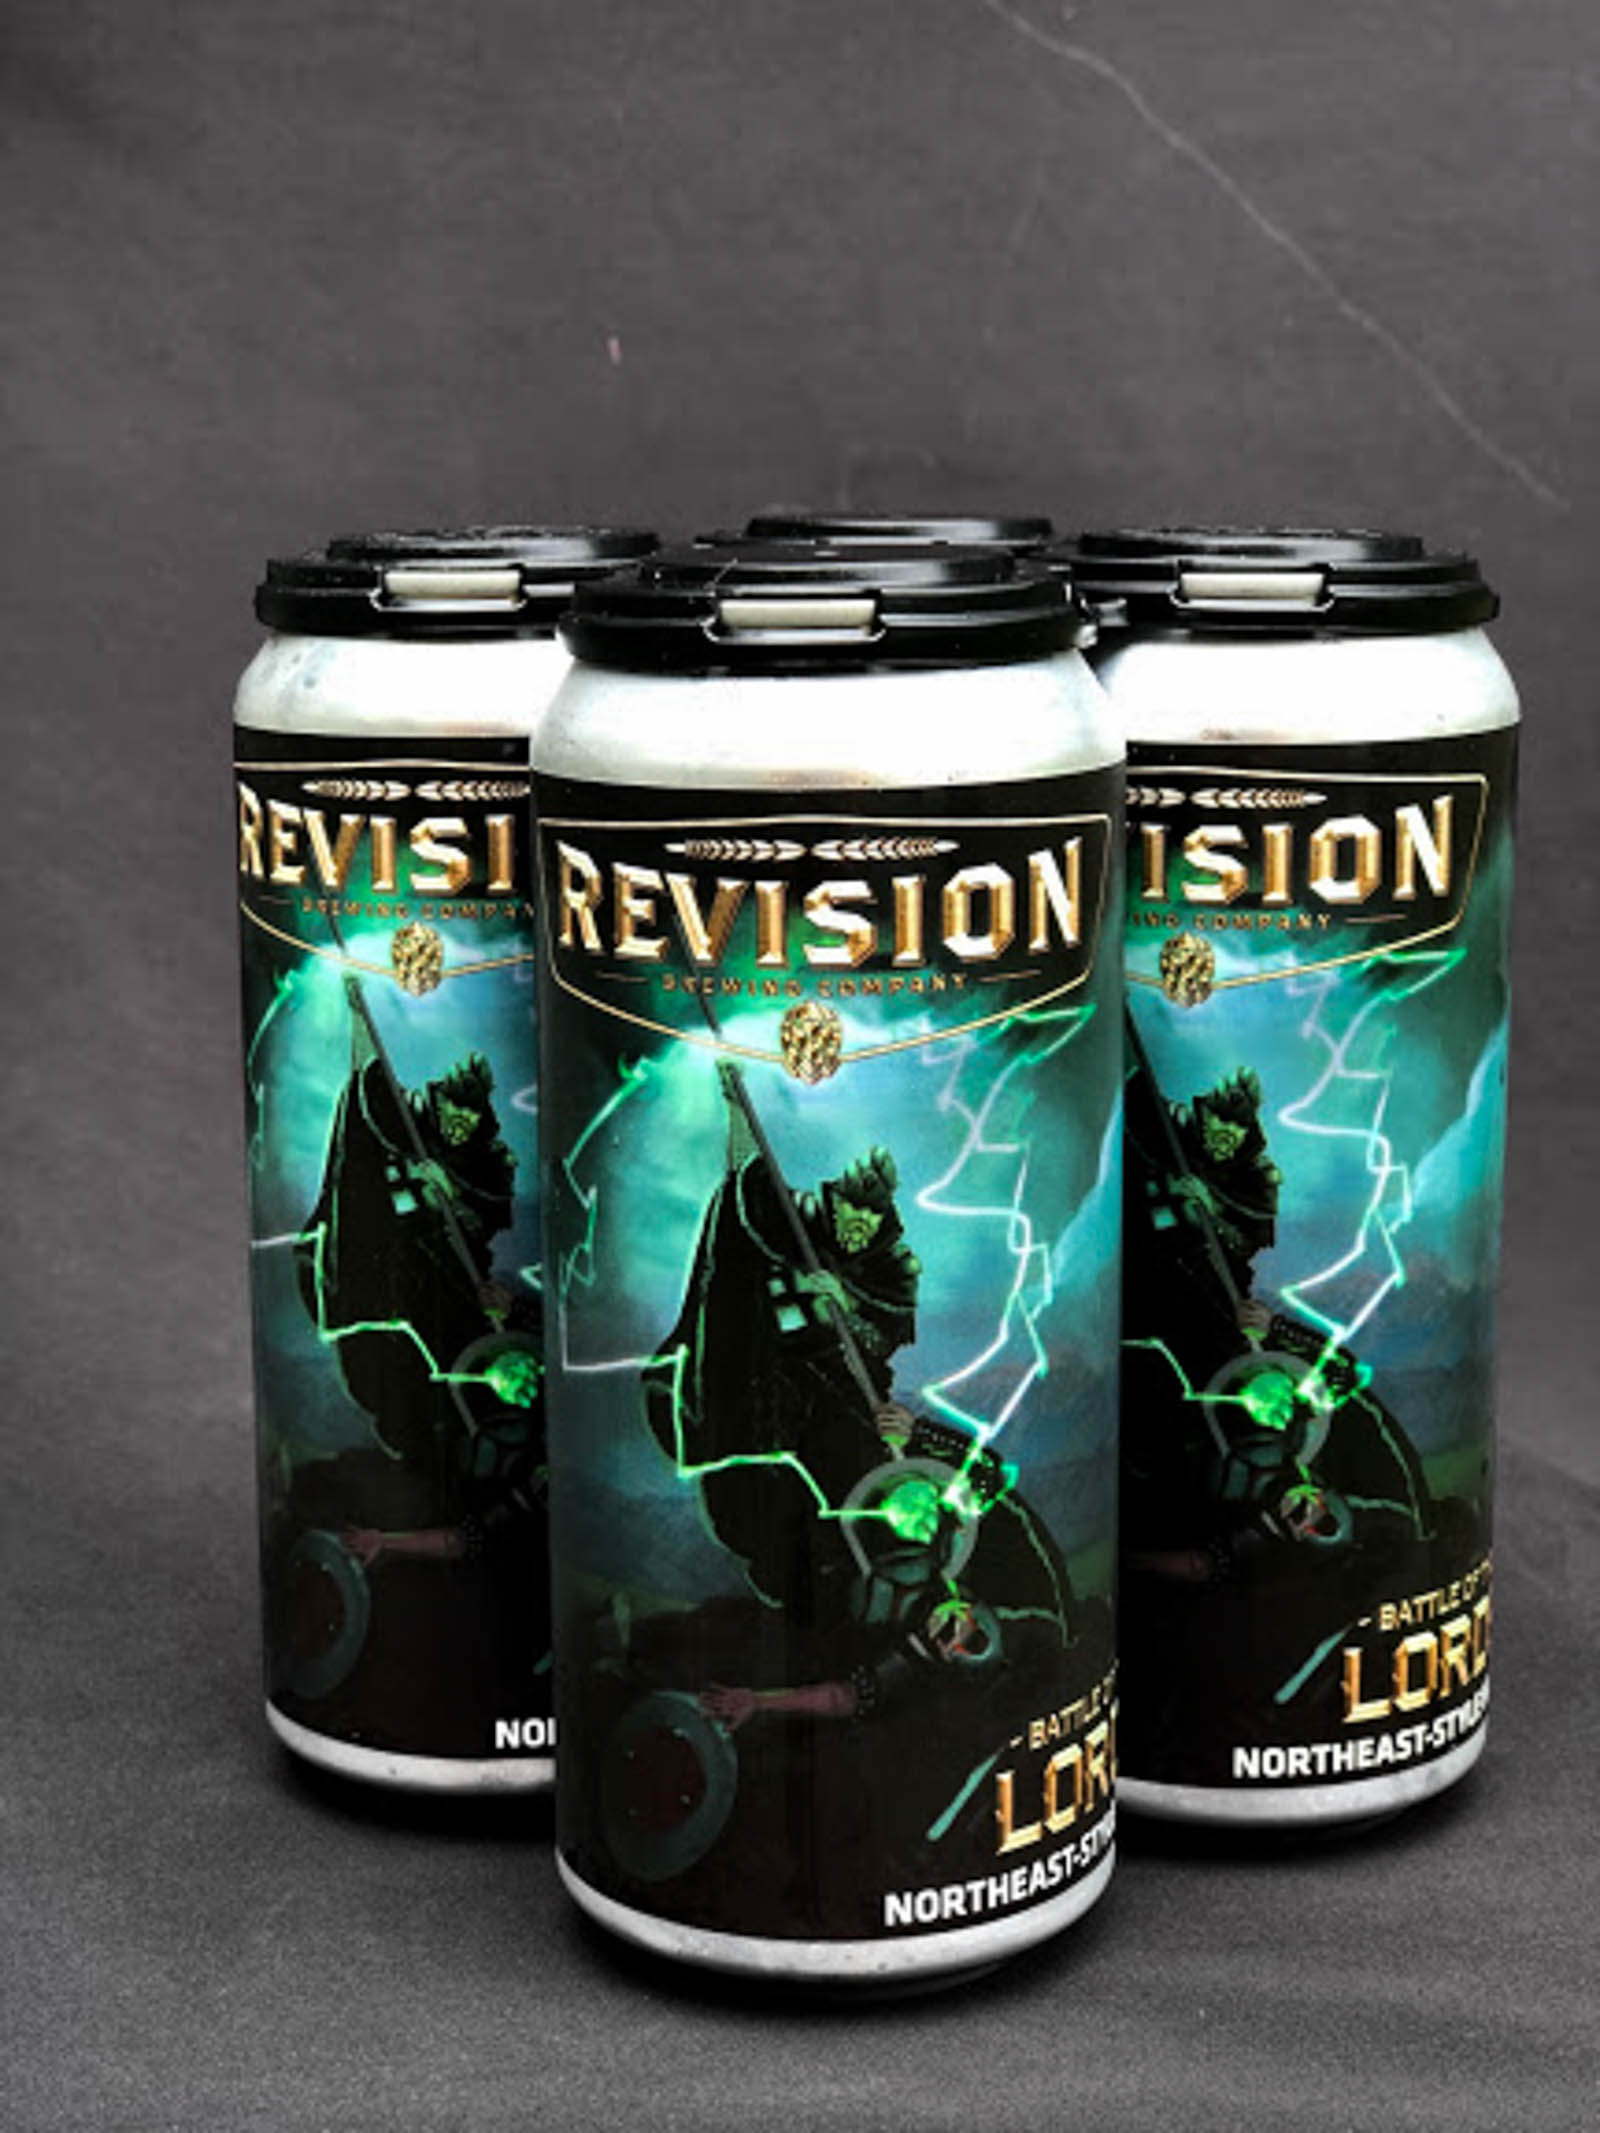 Buy Revision Brewing Battle of the Lords Imperial IPA Online